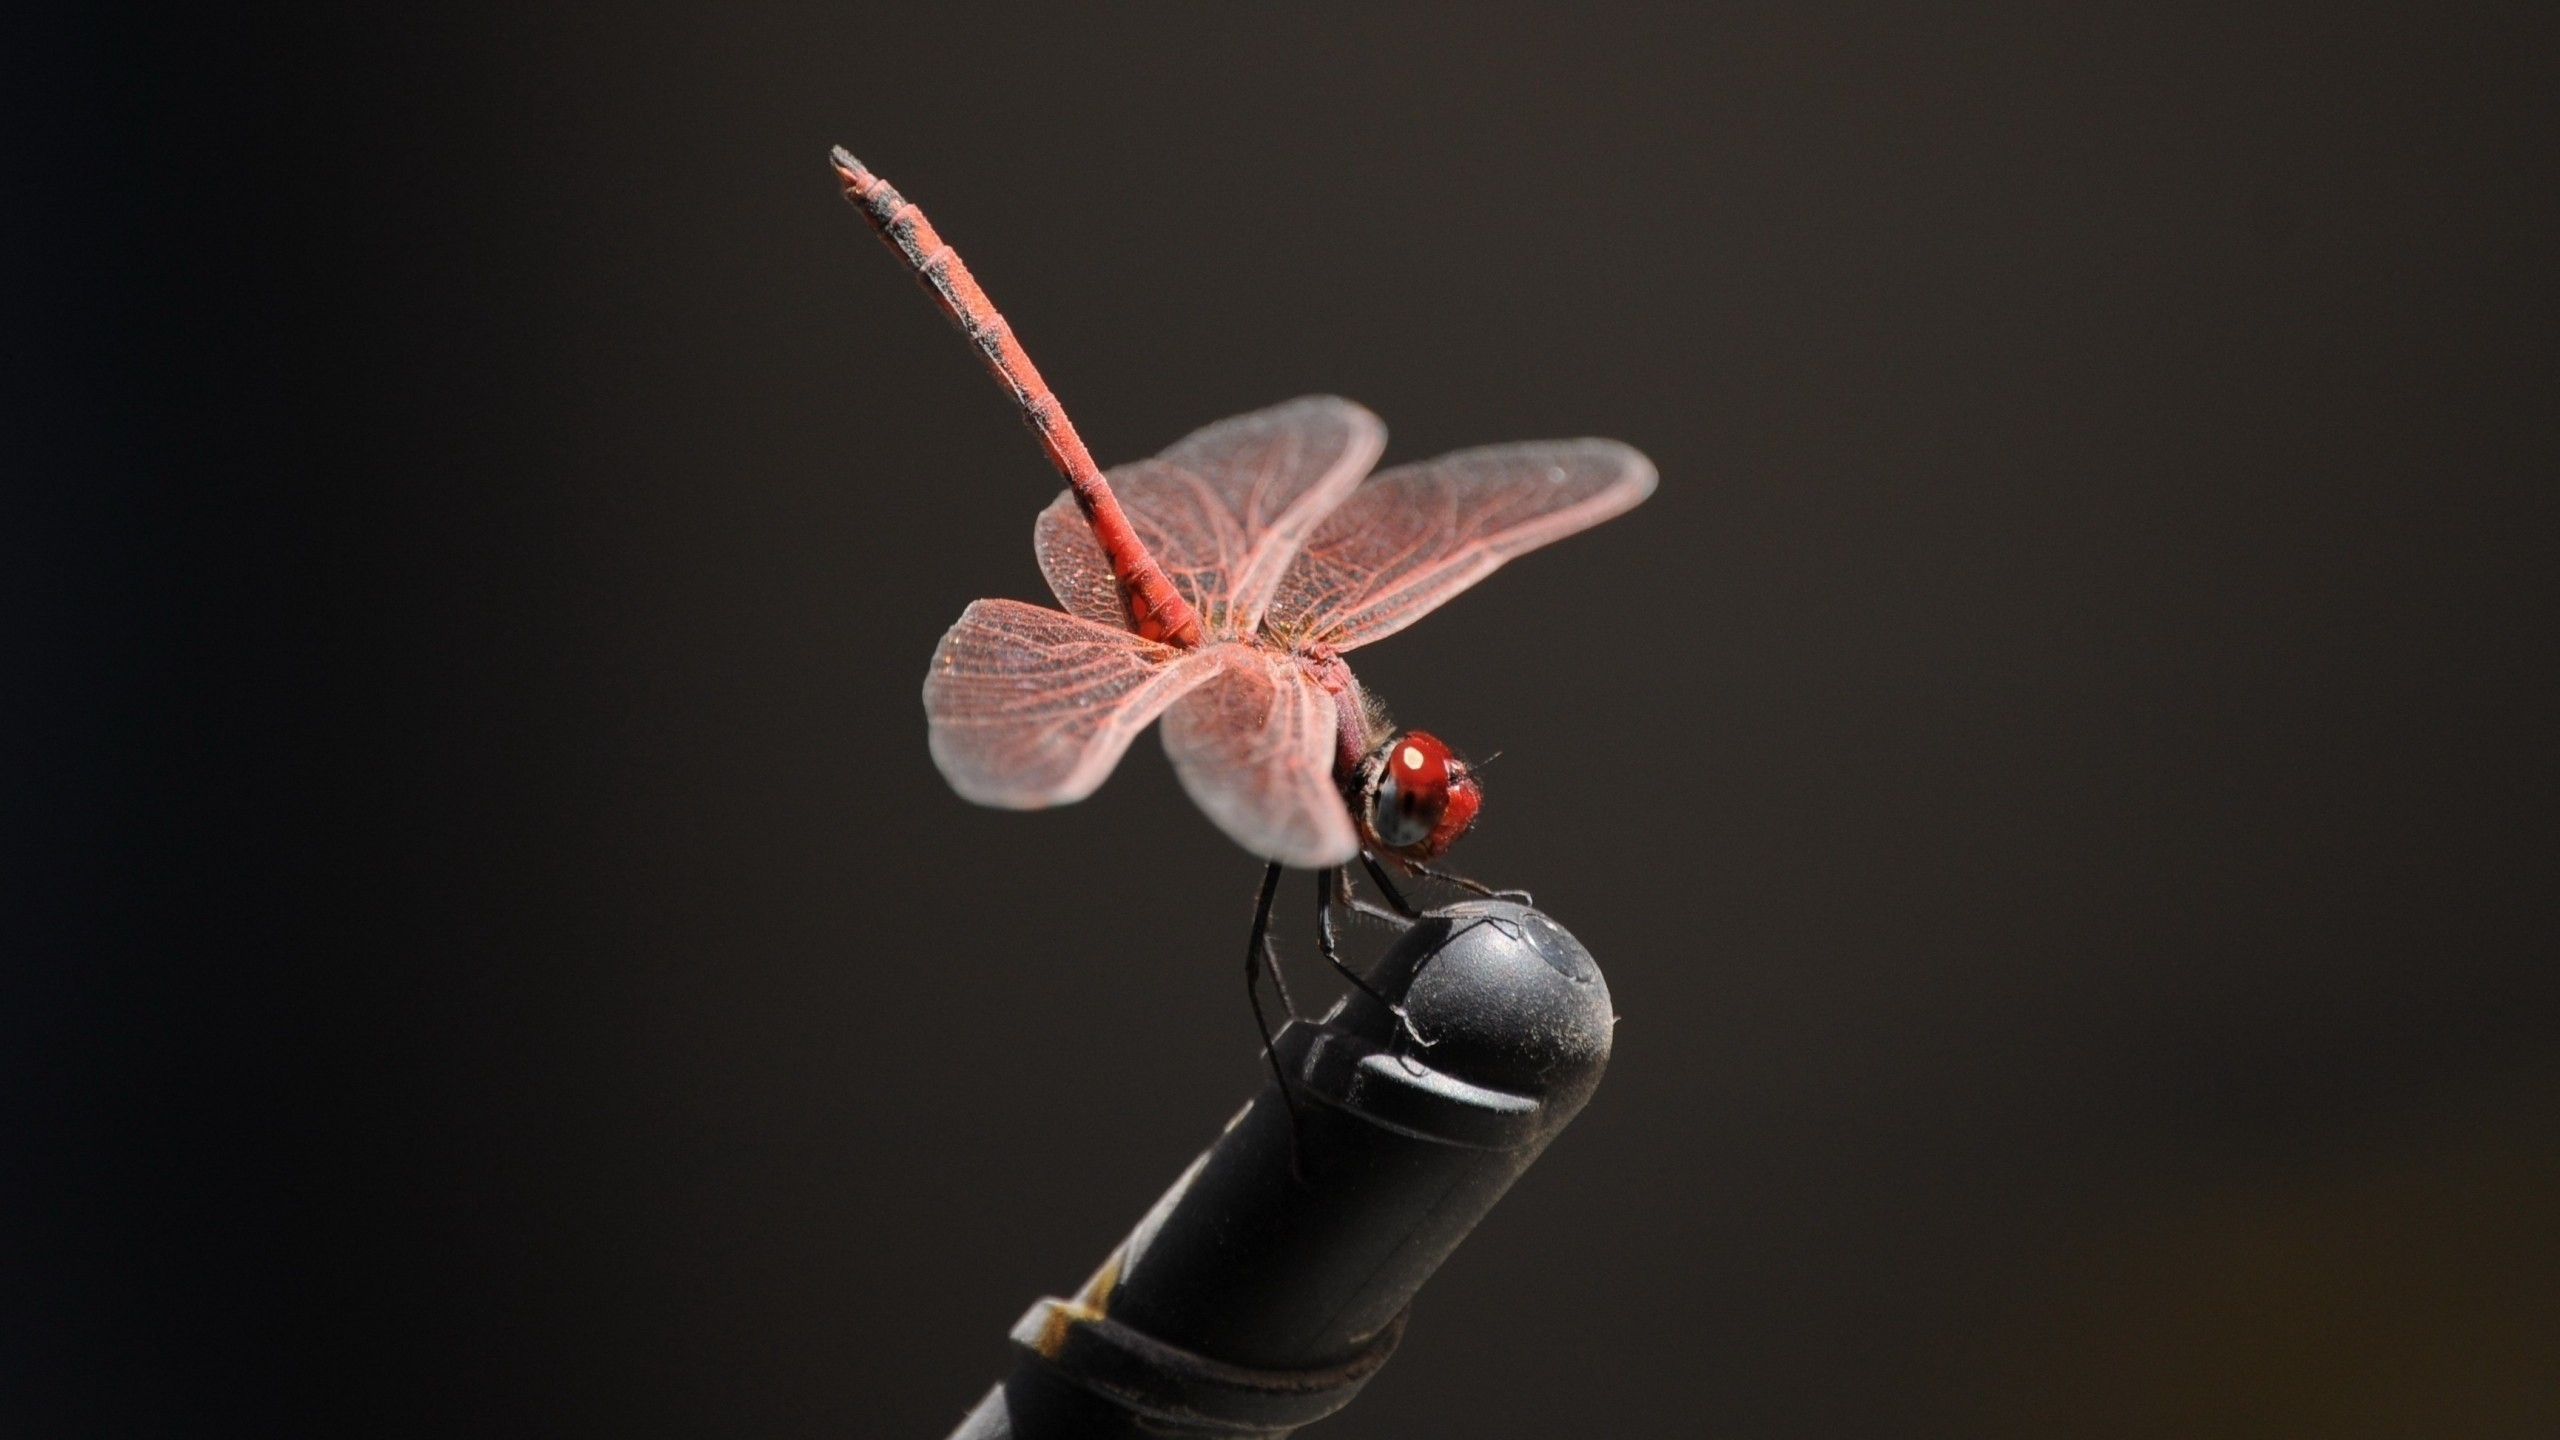 Res: 2560x1440, ... dragonflies-wallpapers-stugon (5) ...